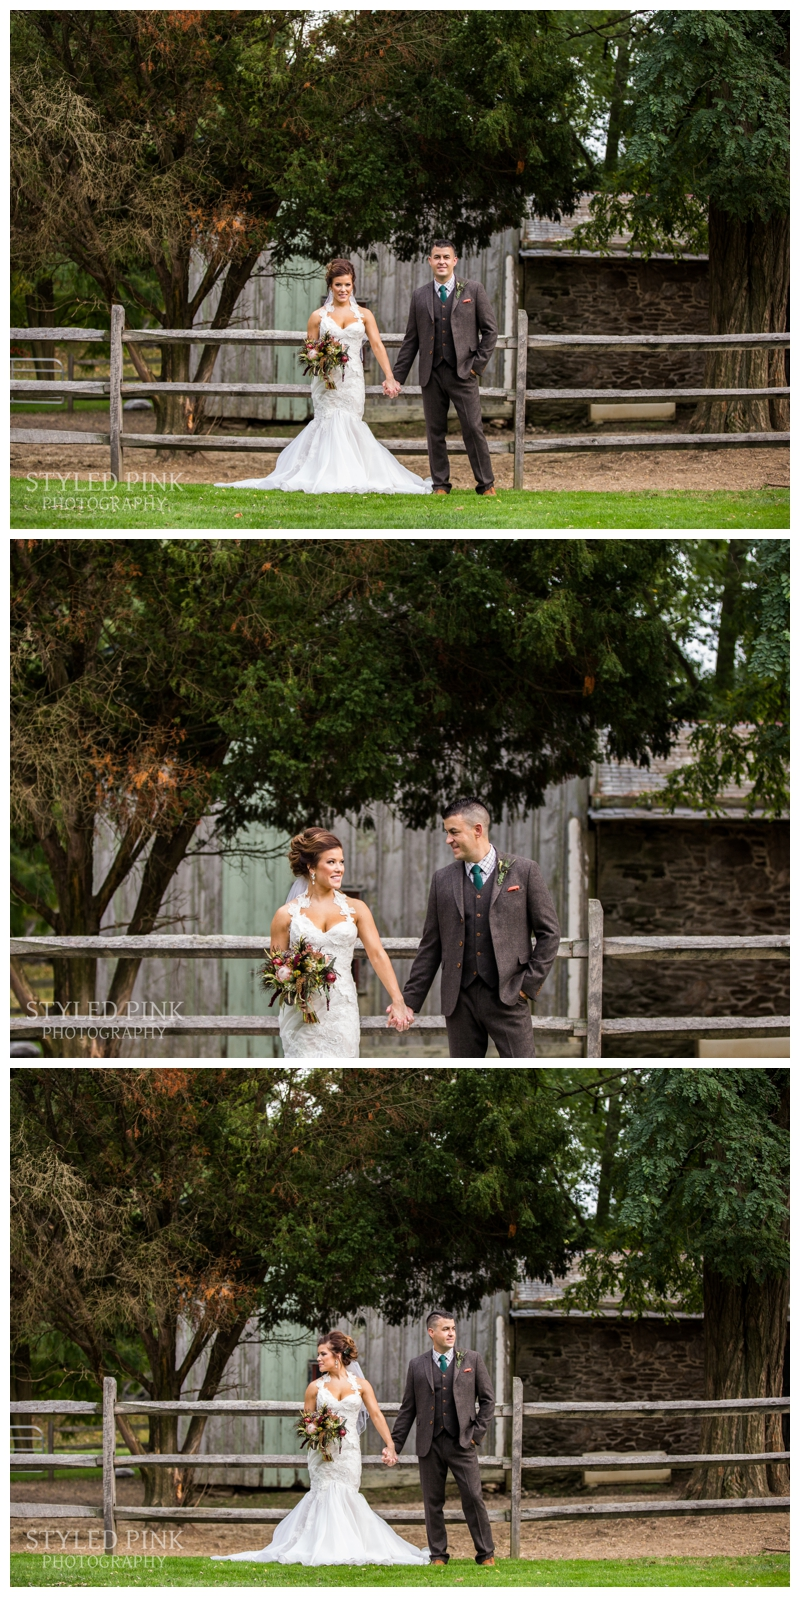 styled-pink-photography-knowlton-mansion-wedding-35